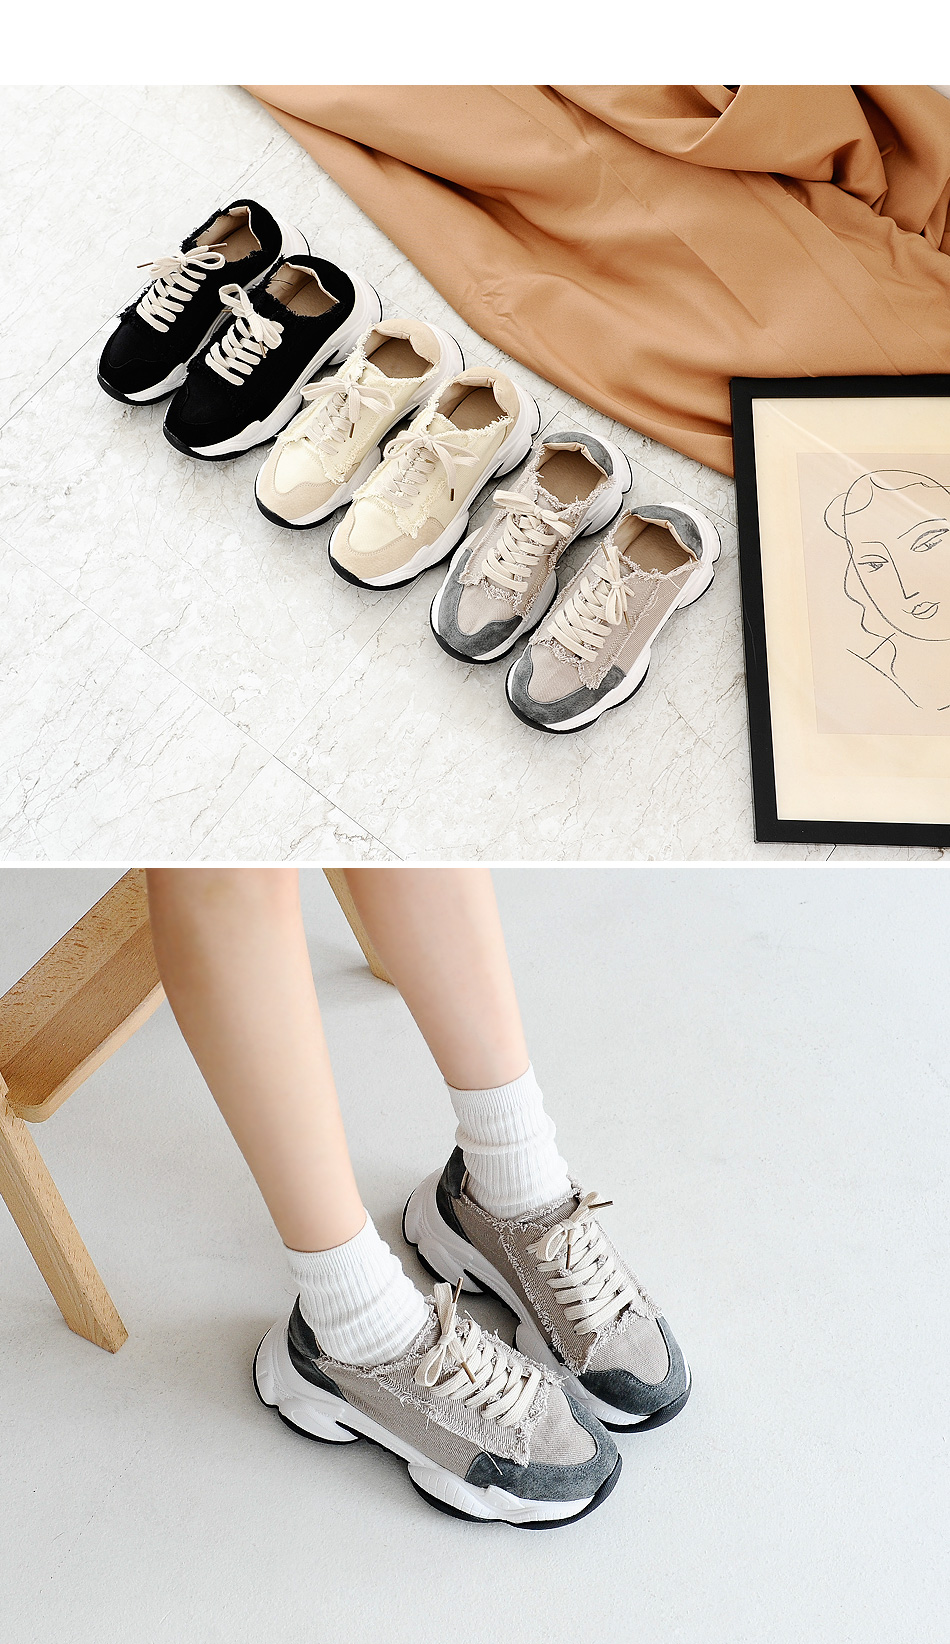 Dimensions ugly sneakers 5cm